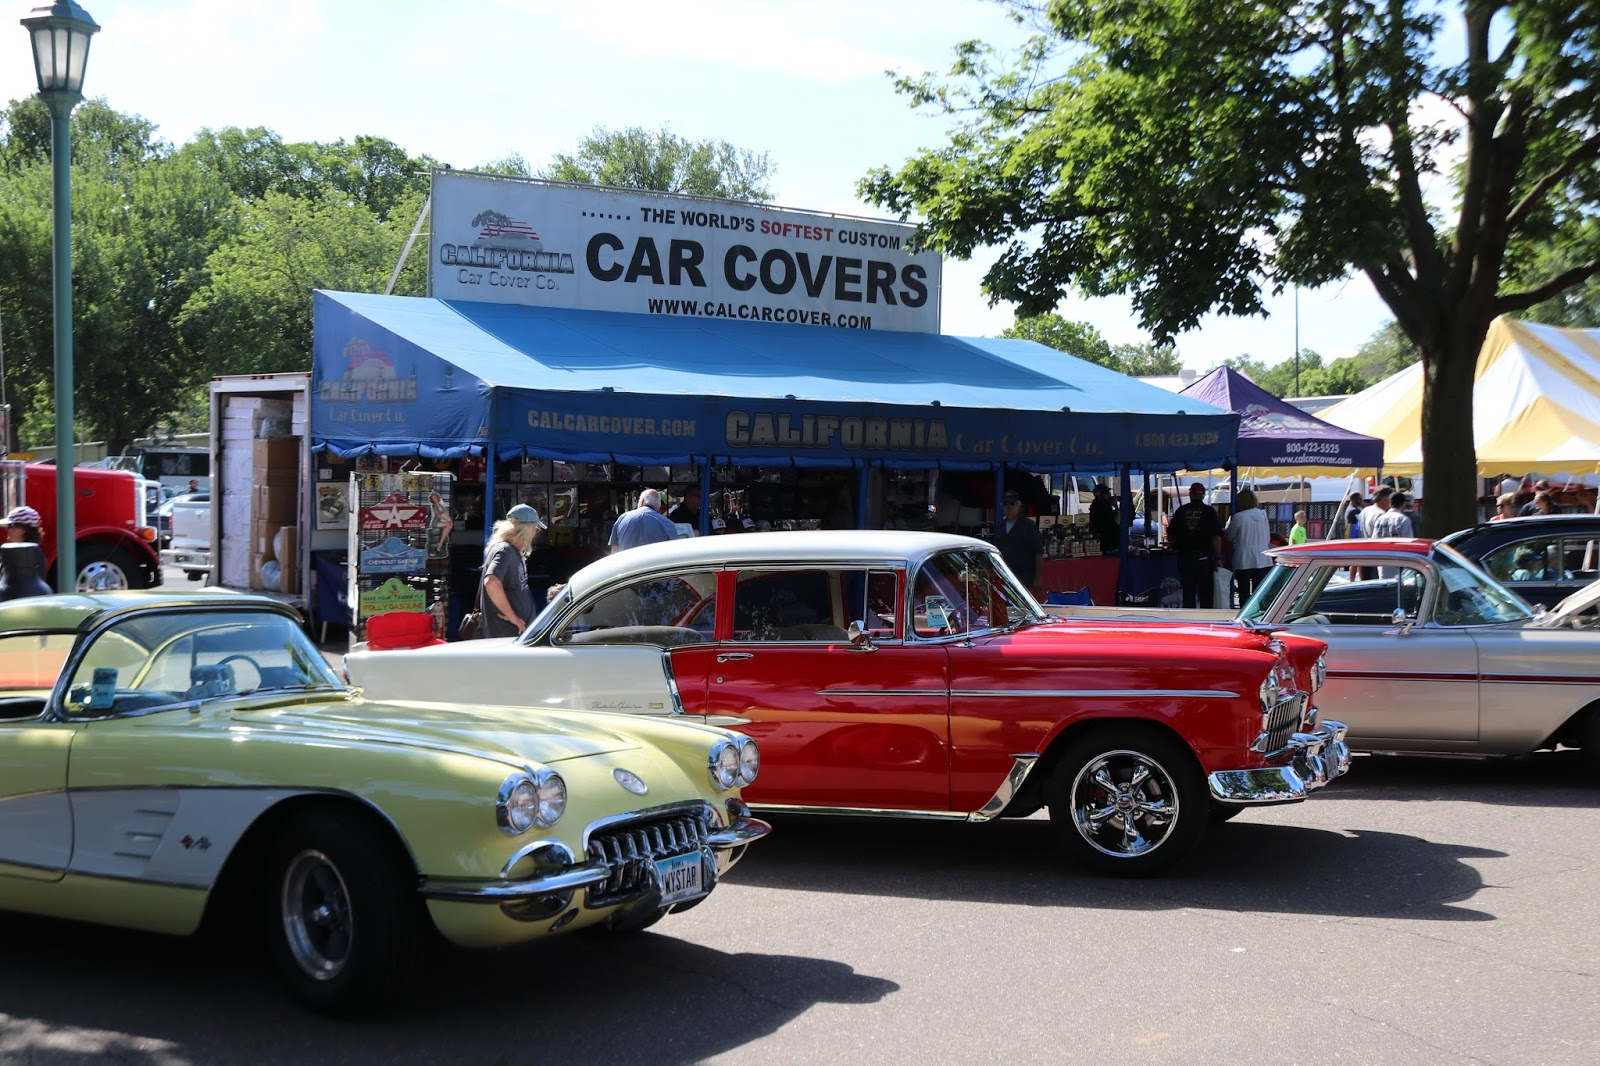 Covering Classic Cars : Back to the Fifties Car Show Weekend 2017 in ...